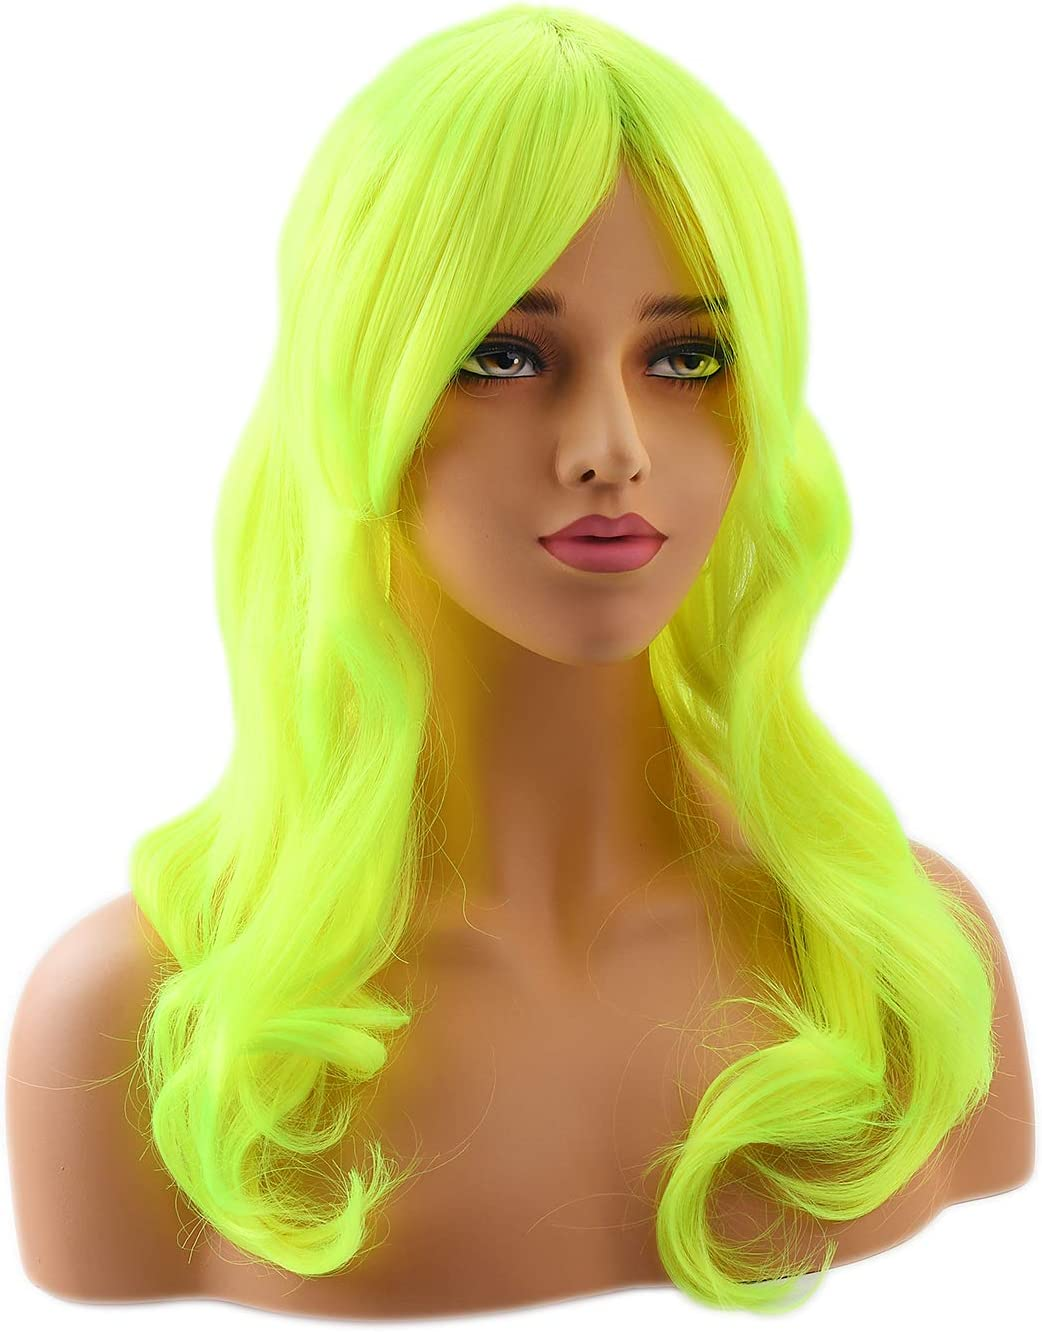 L.Blue# Neitsi 22 225g 100/% Korean Fiber Curly Cosplay Long Synthetic Hair Wigs Womens Girls Full Head Wigs